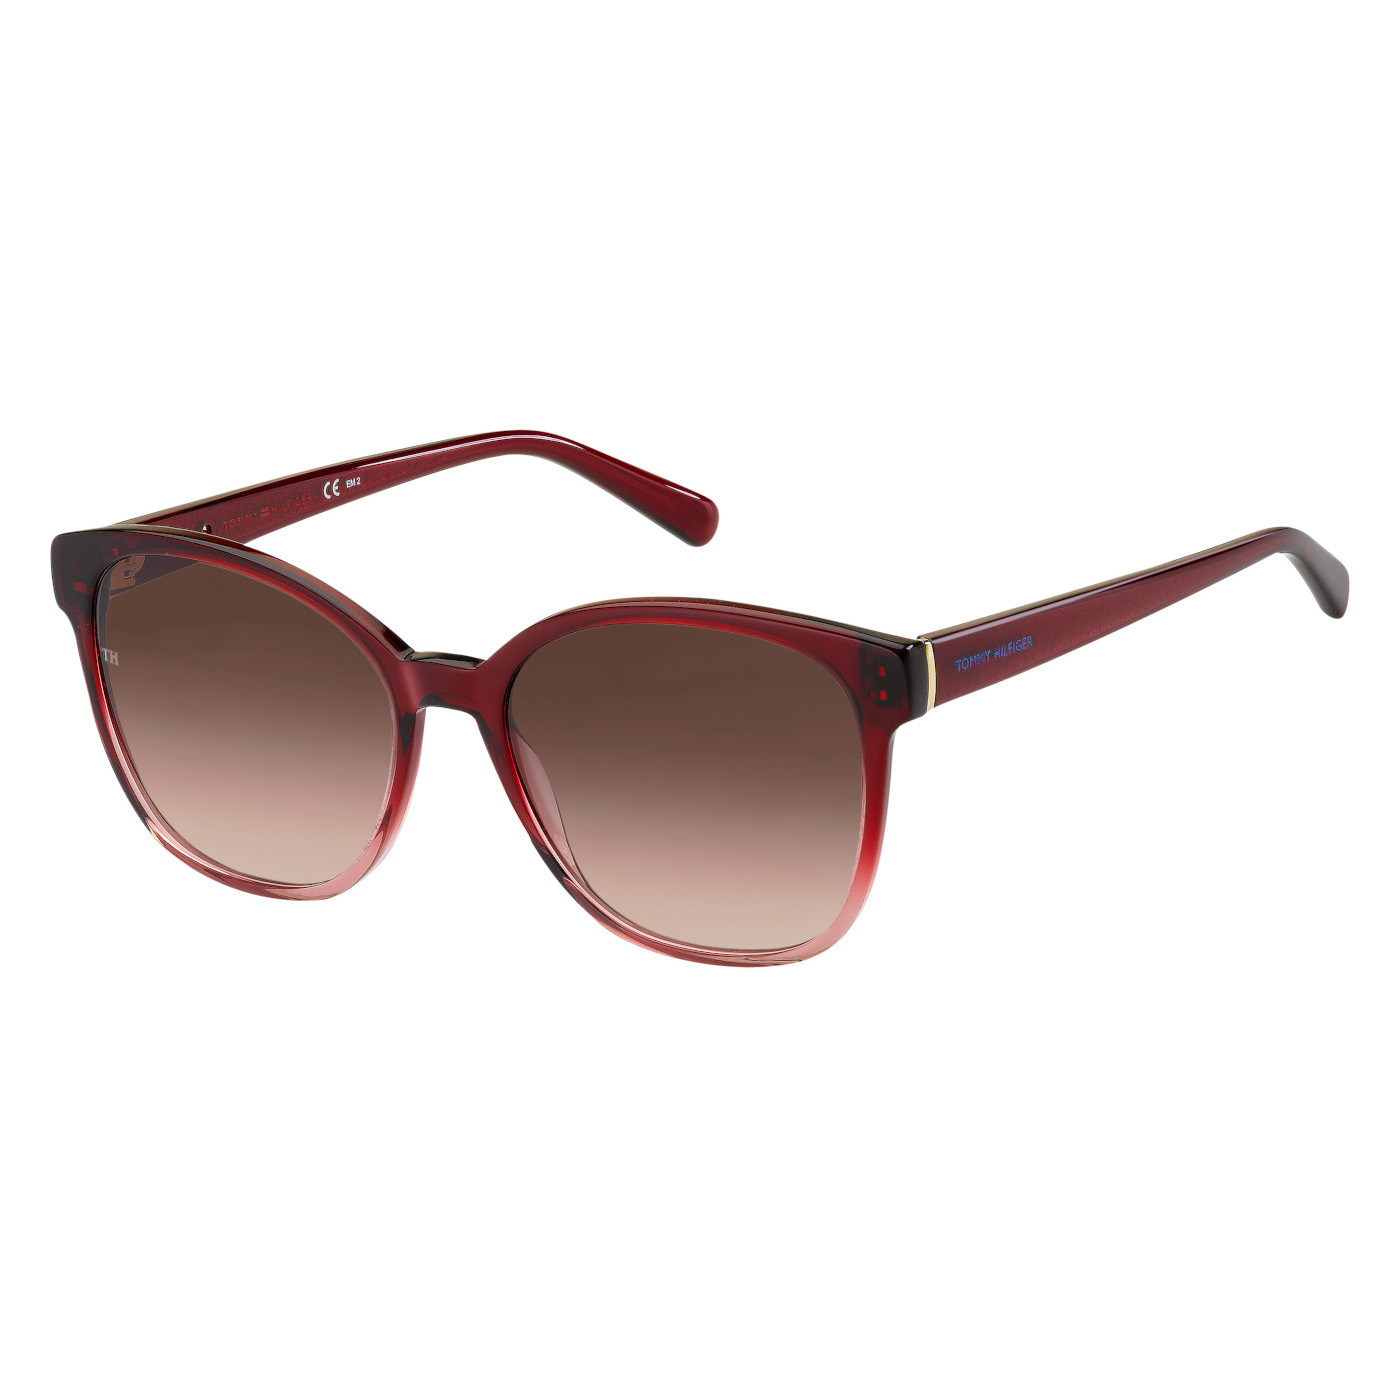 Tommy Hilfiger Red Zonnebril TH-1811S-C9A-55-HA